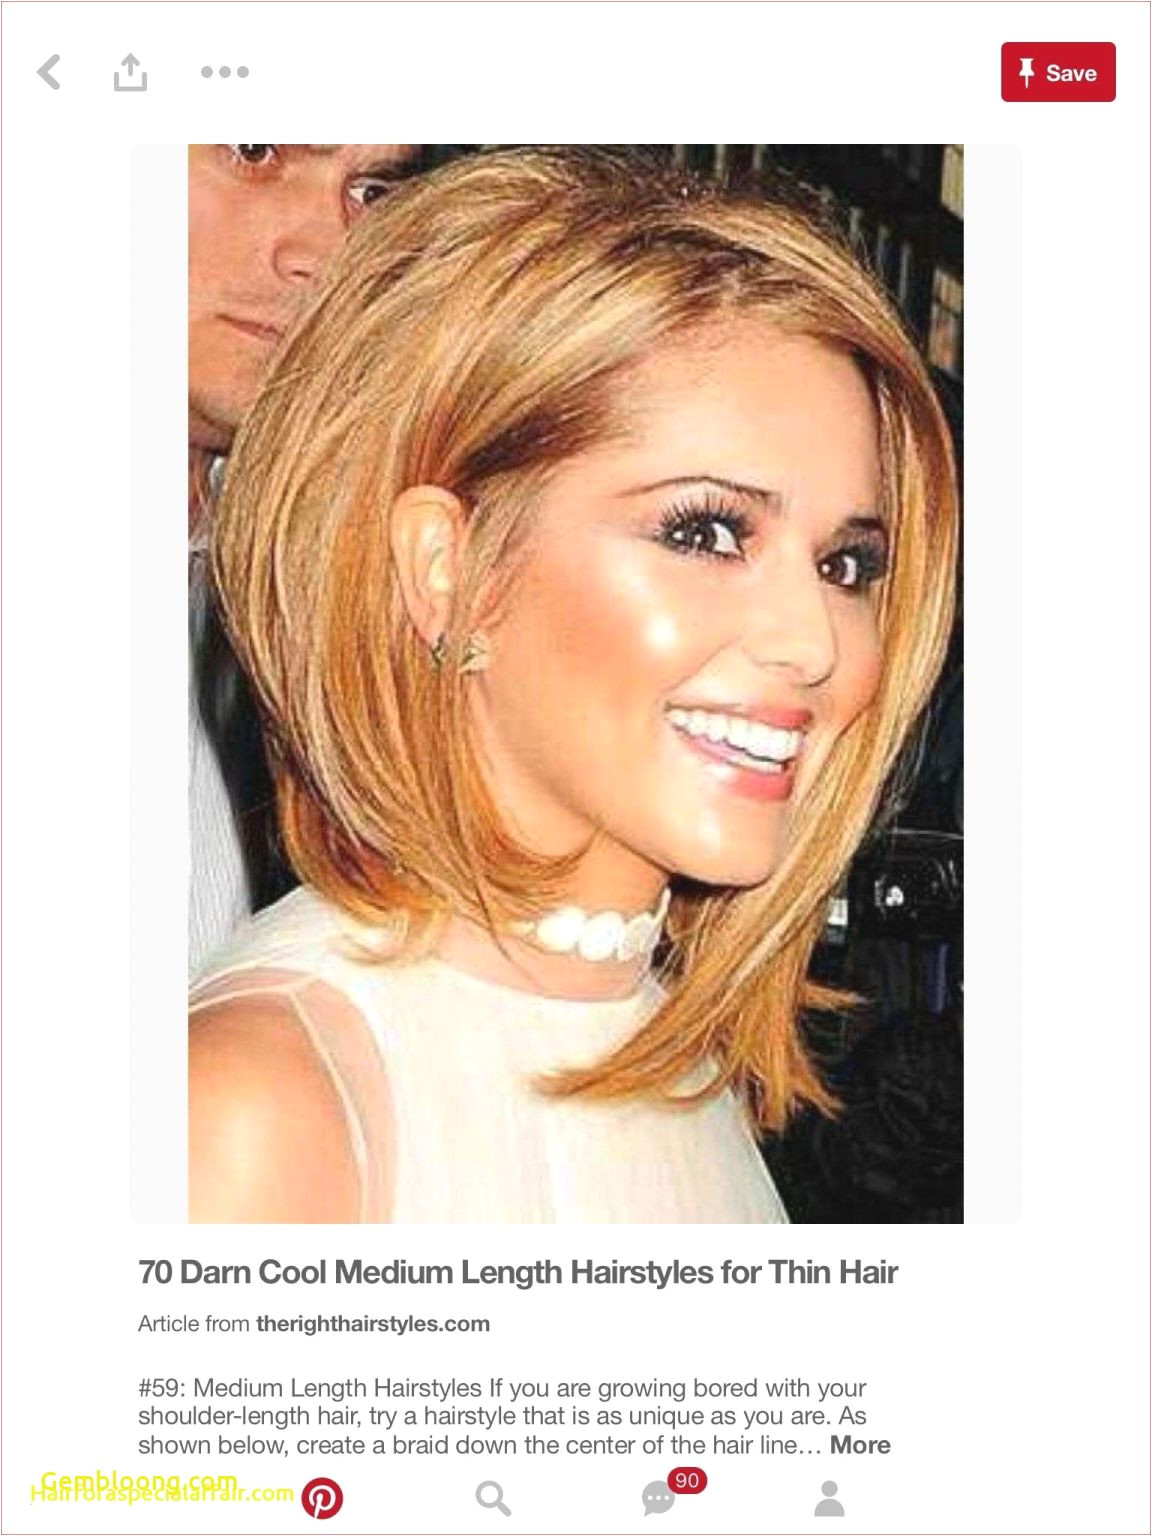 Hairstyles for Hair Down to Your Shoulders form